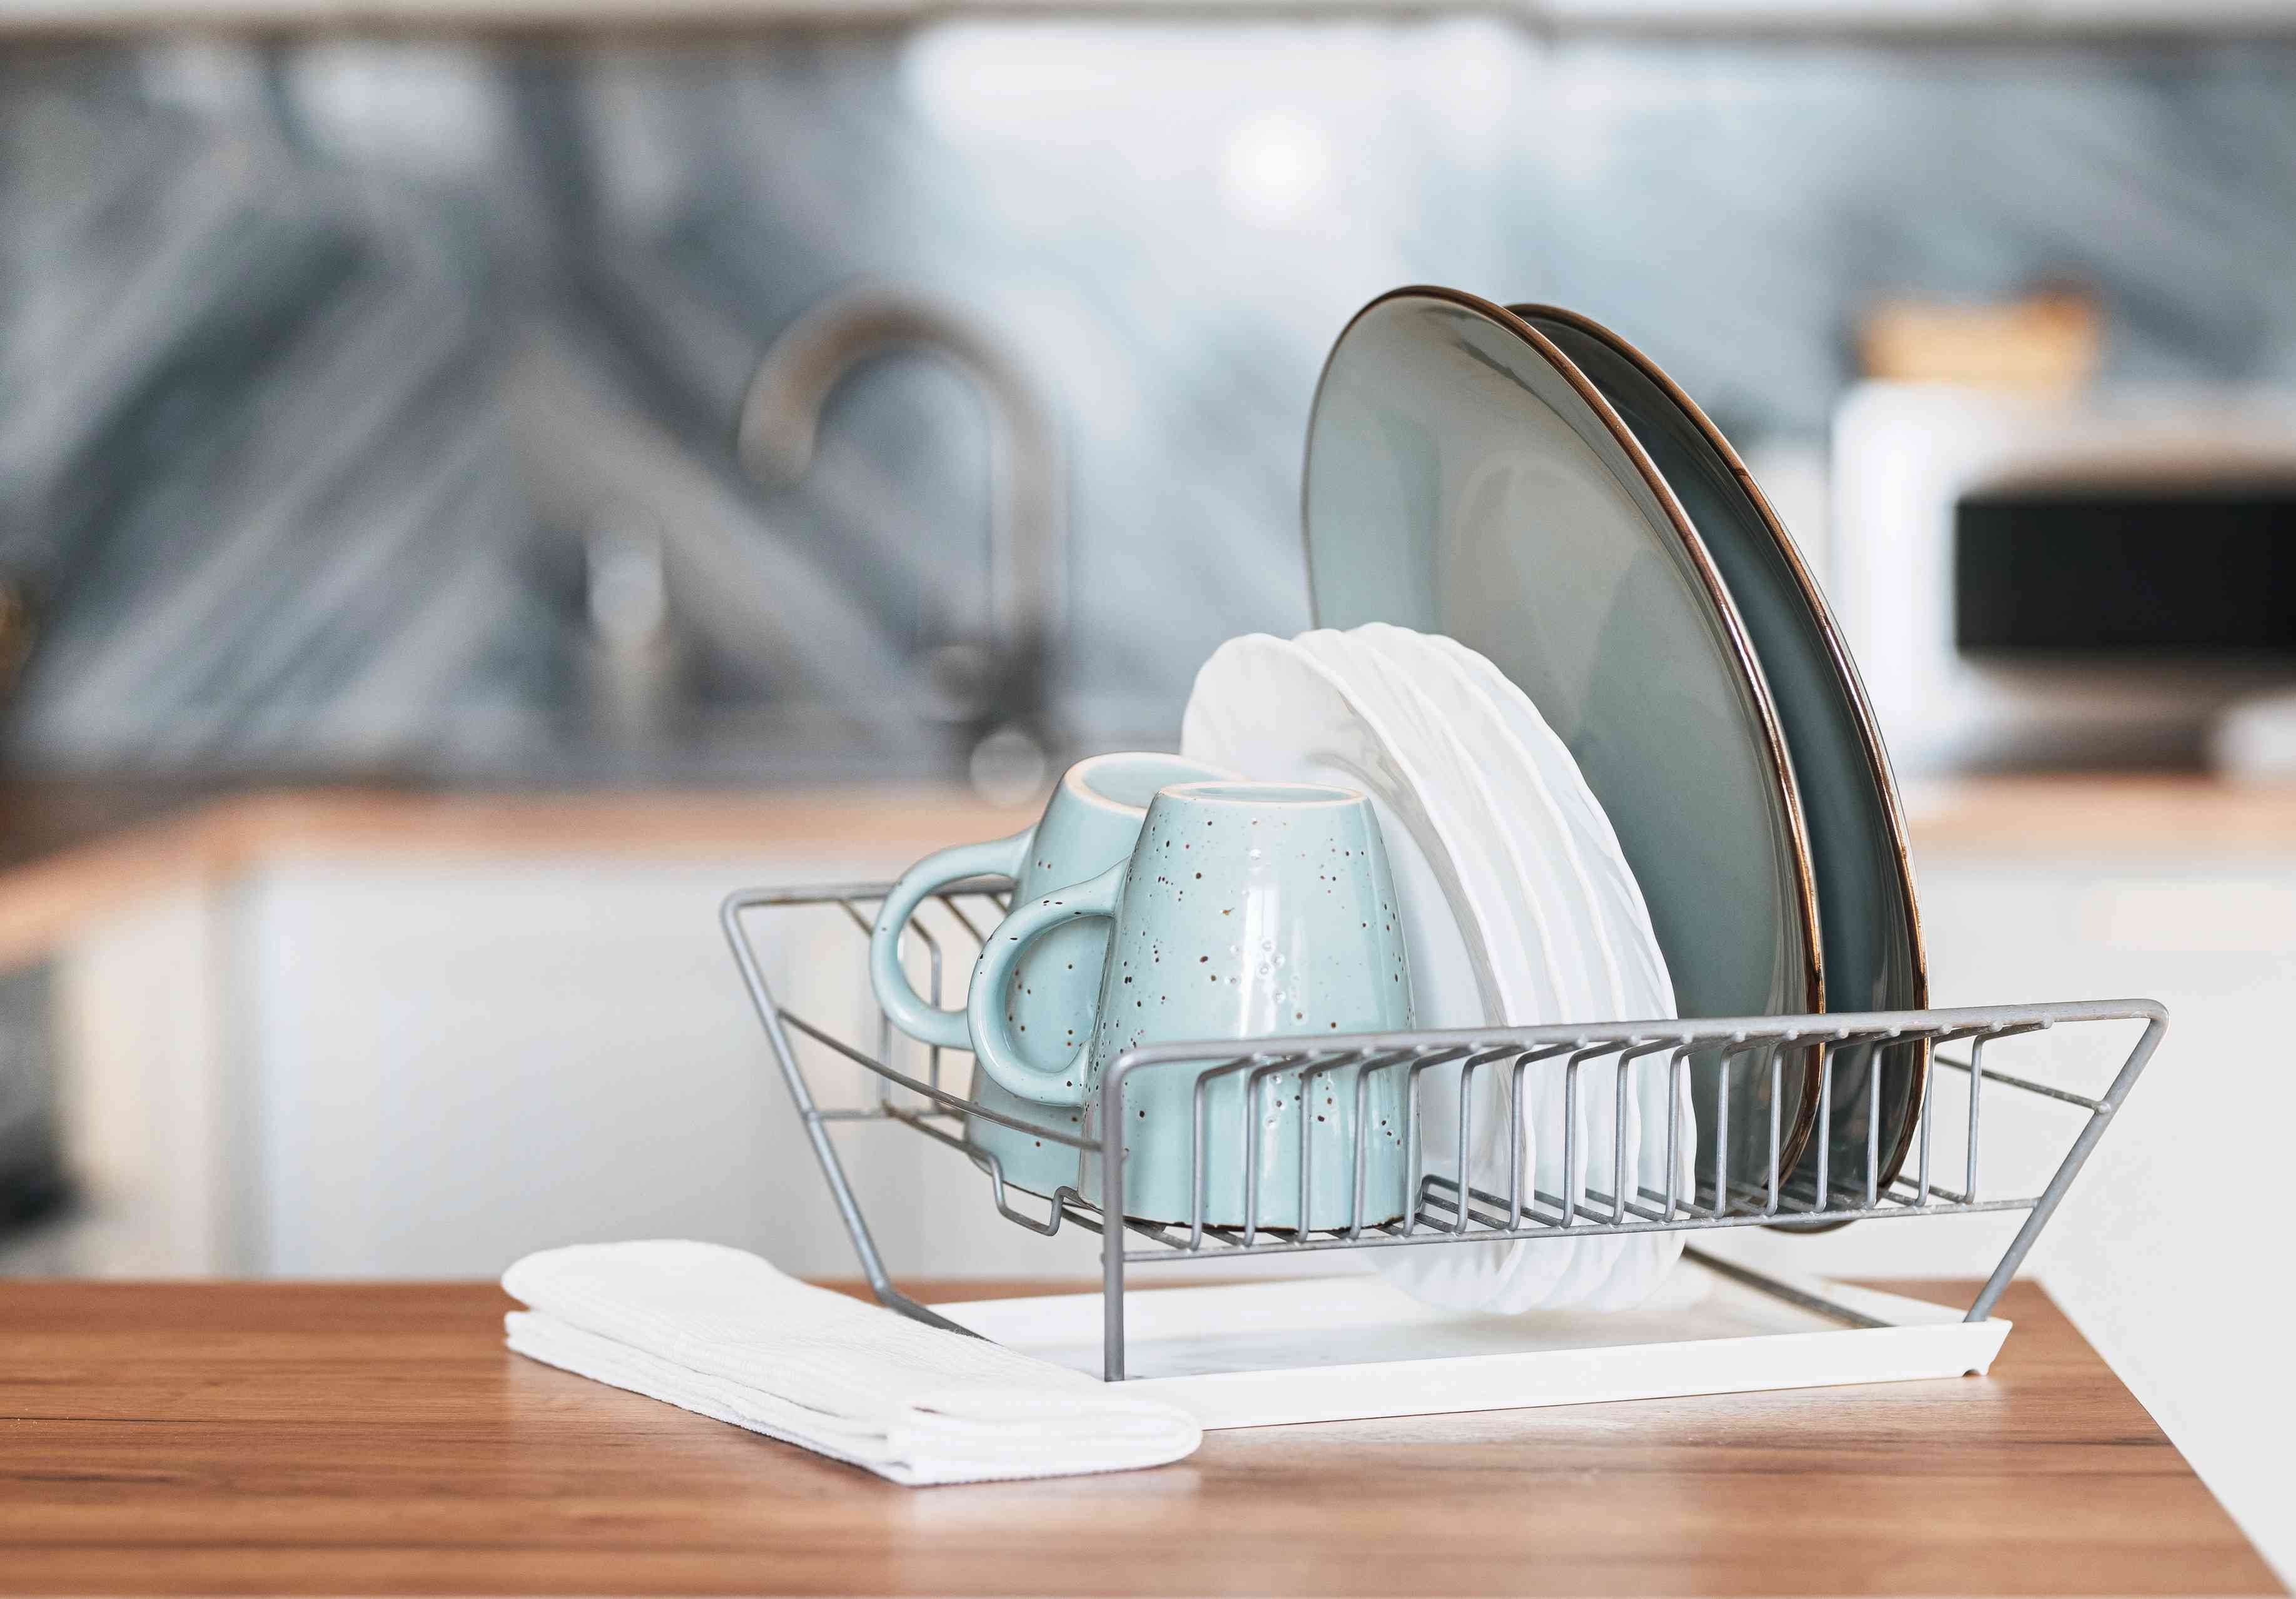 Clean dishes stacked in drying rack